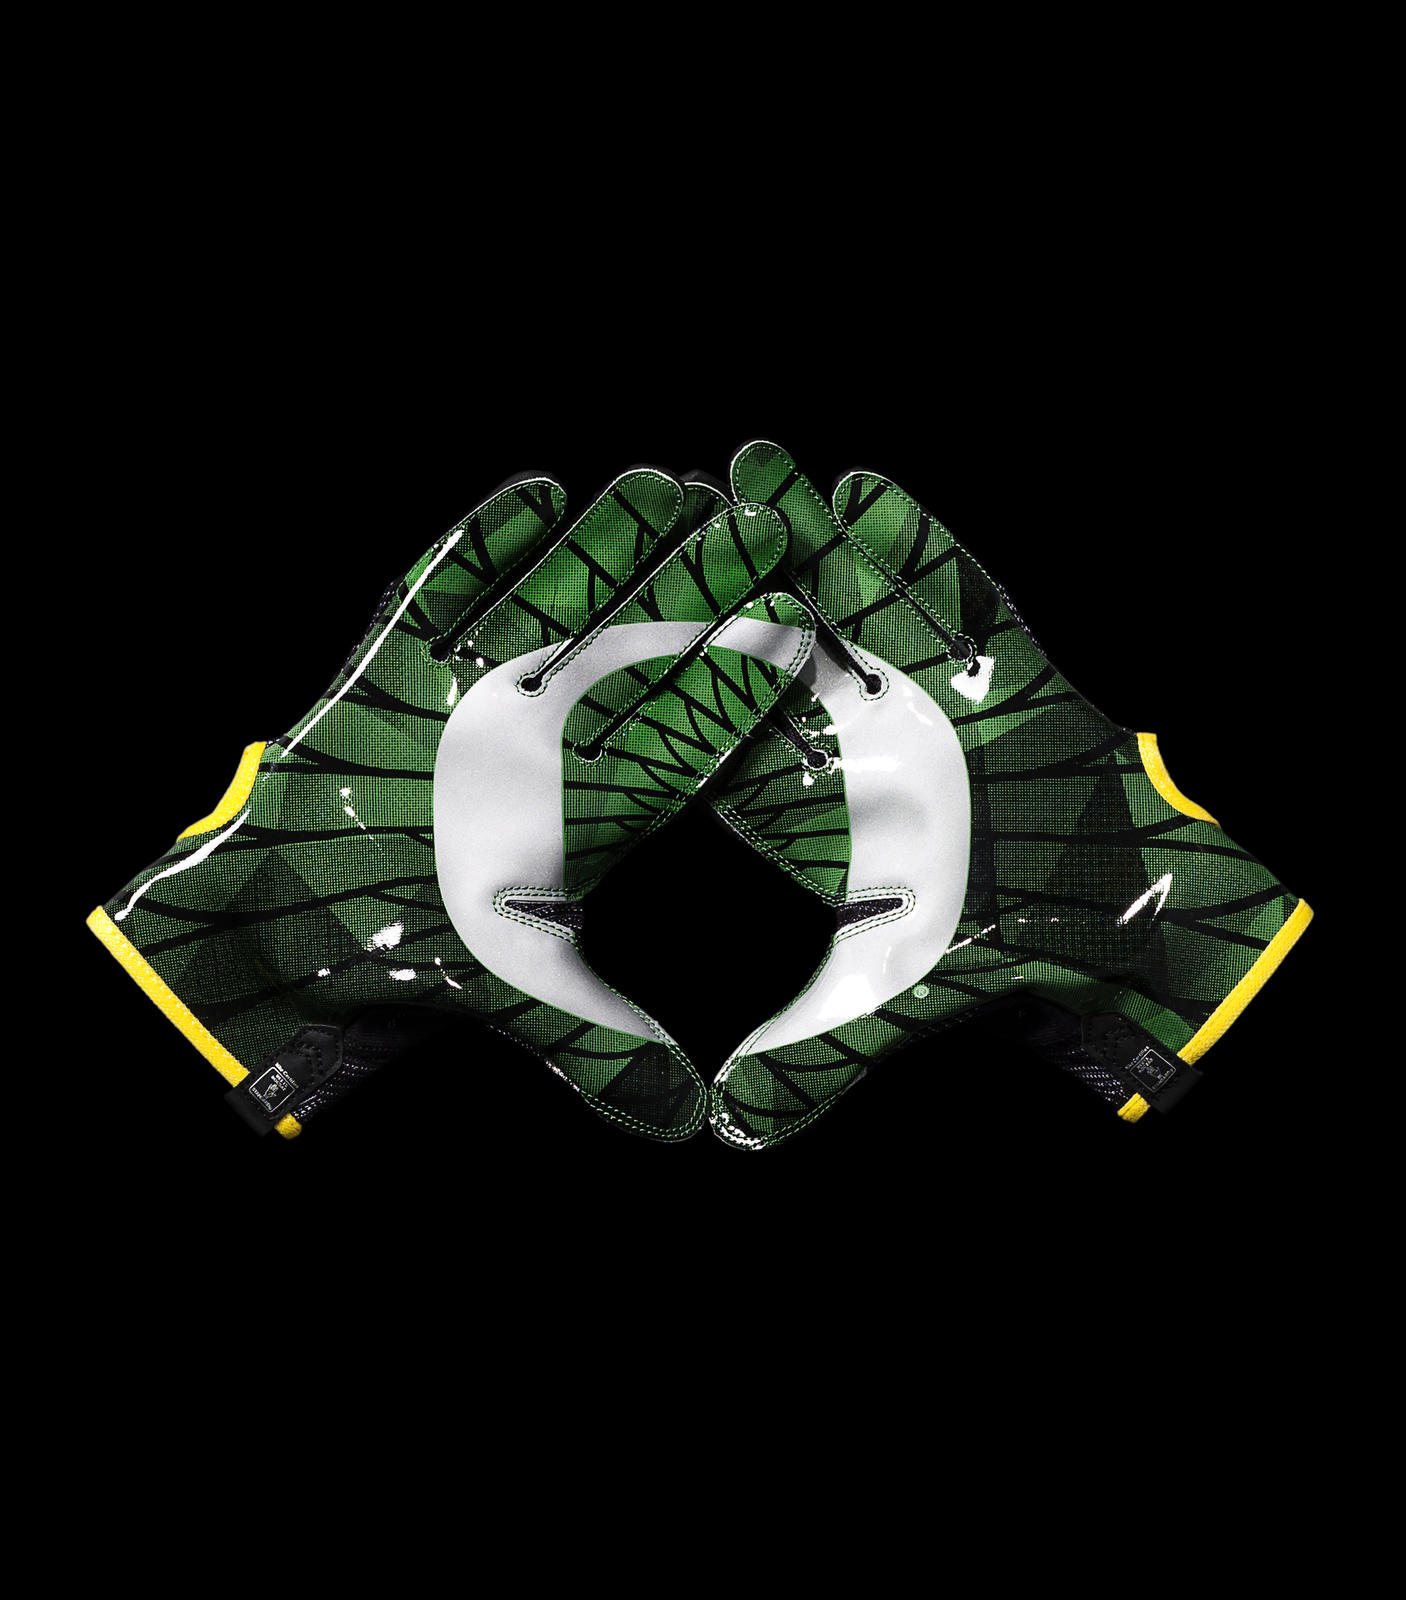 44841_253264_HO14_NFB_NCAA_Gloves_Oregon